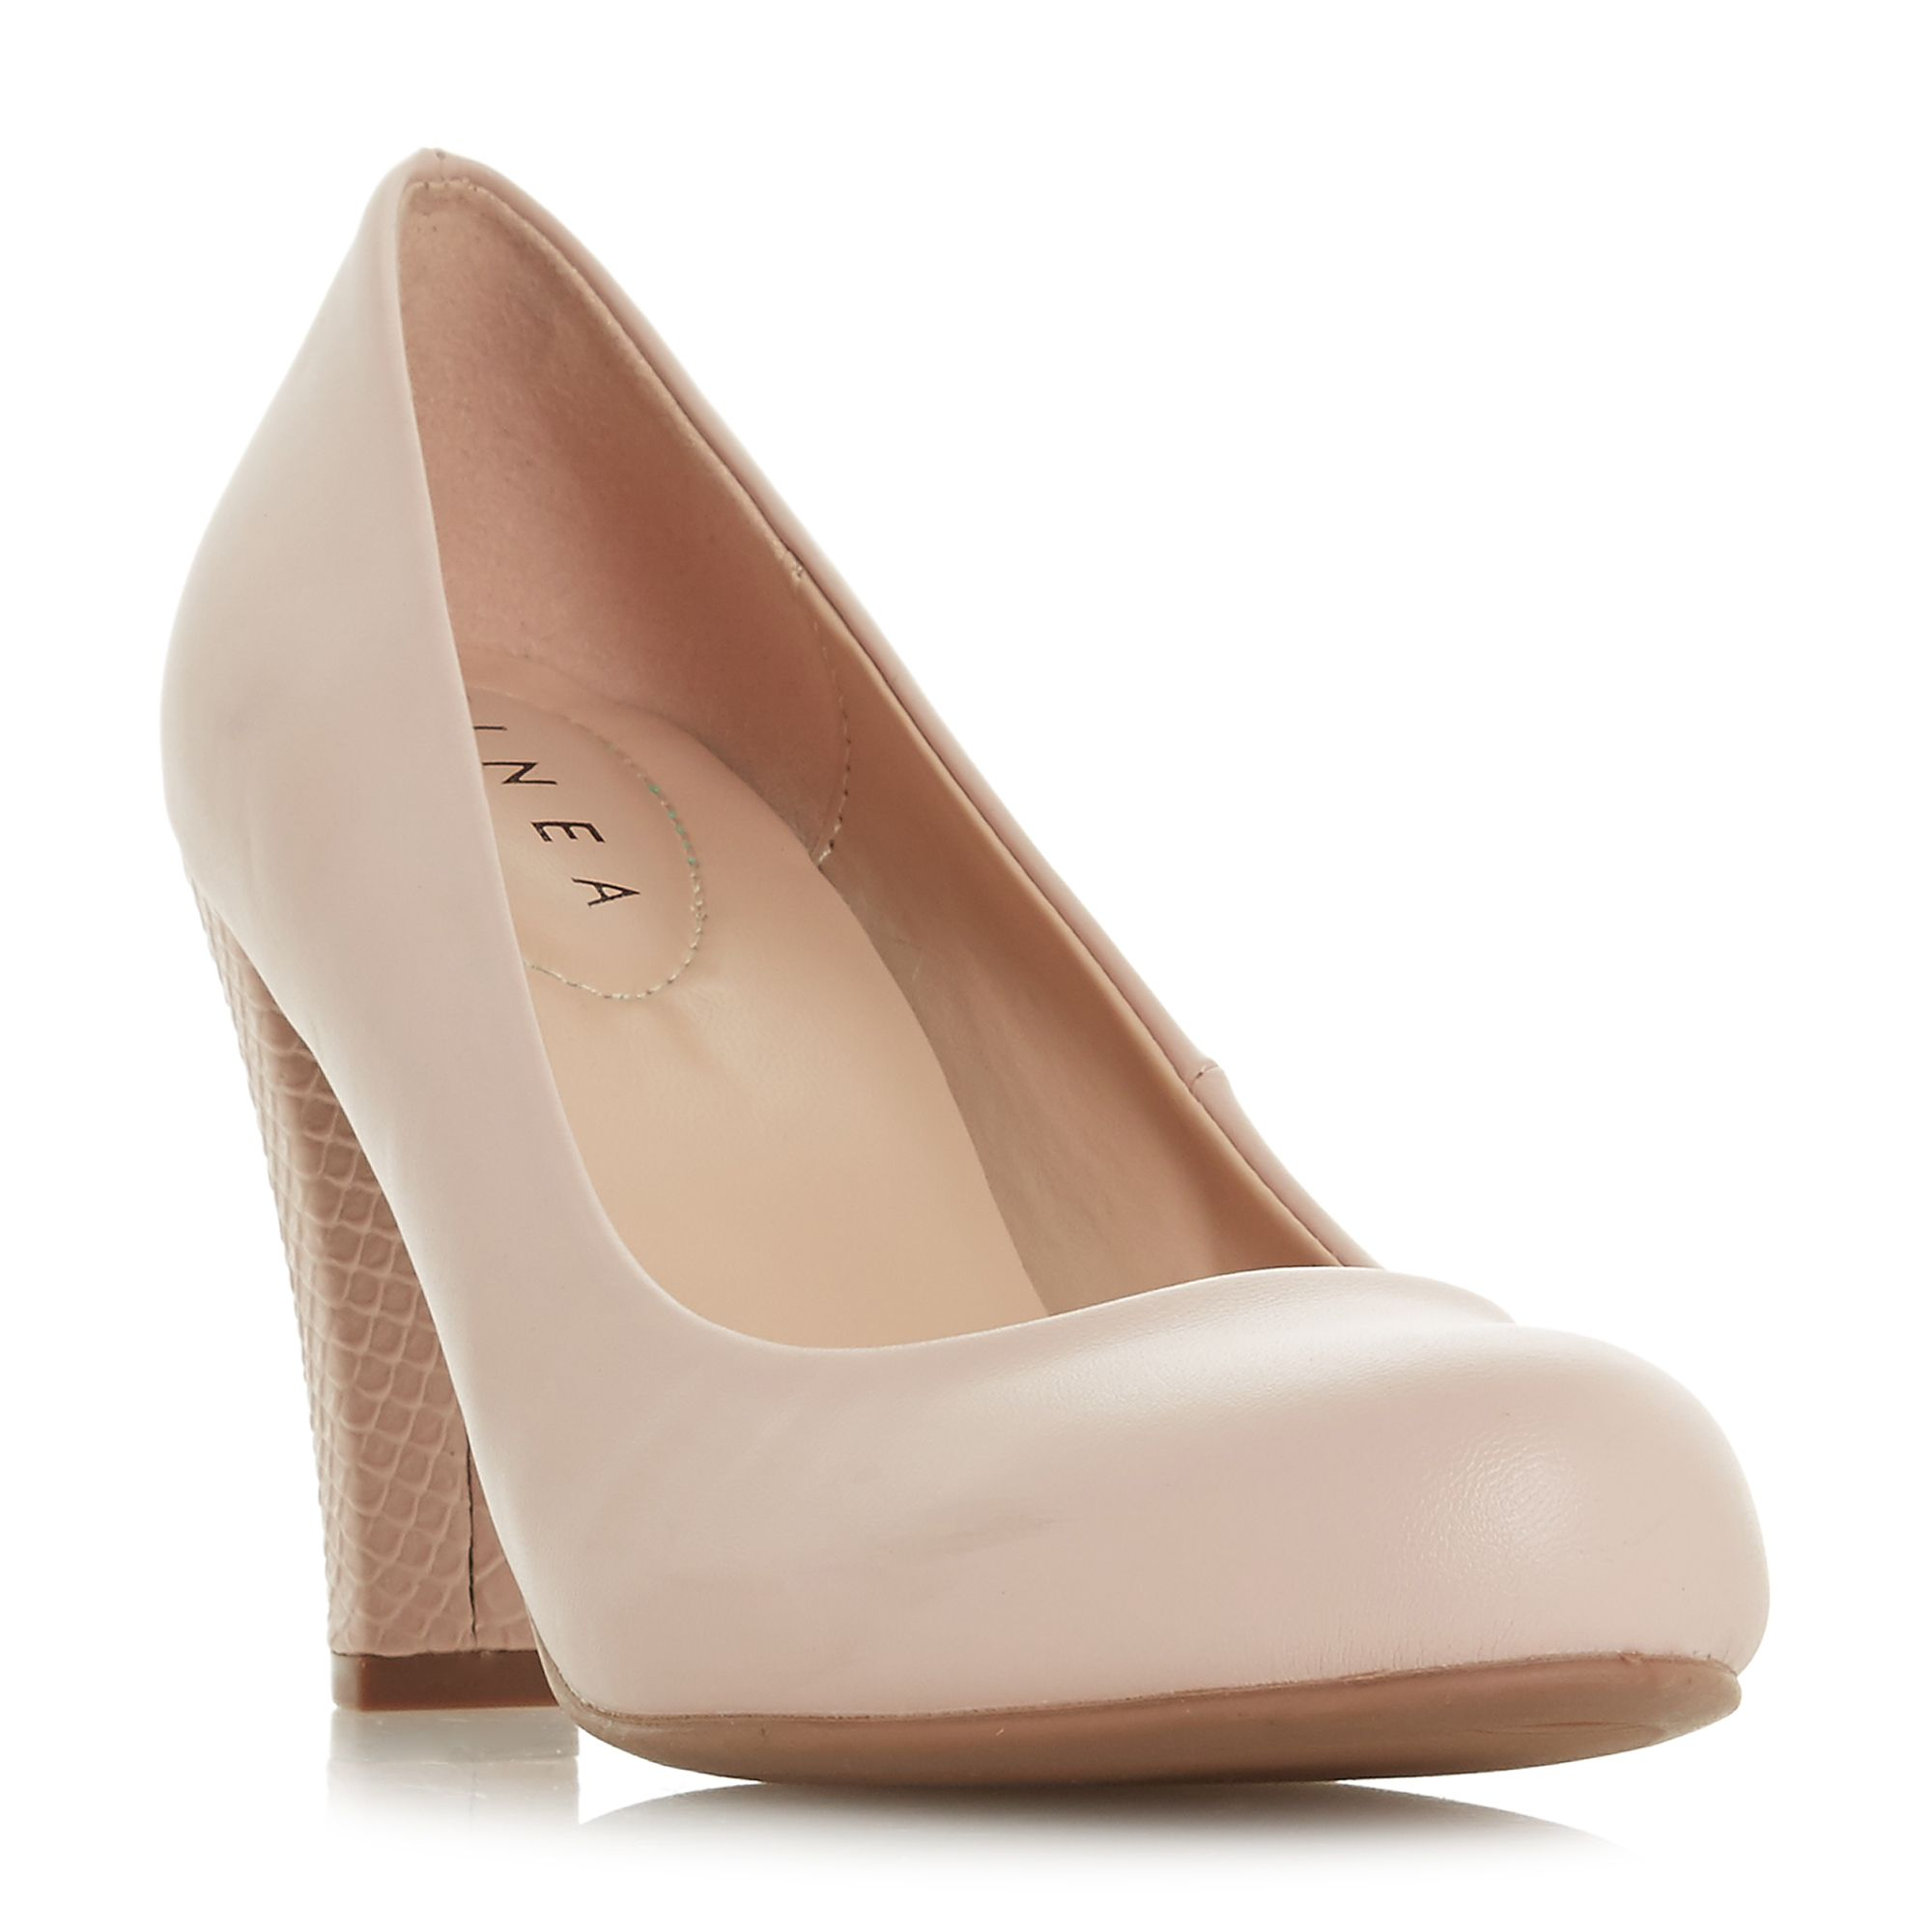 Linea Alianna Comfort Court Shoes, Nude